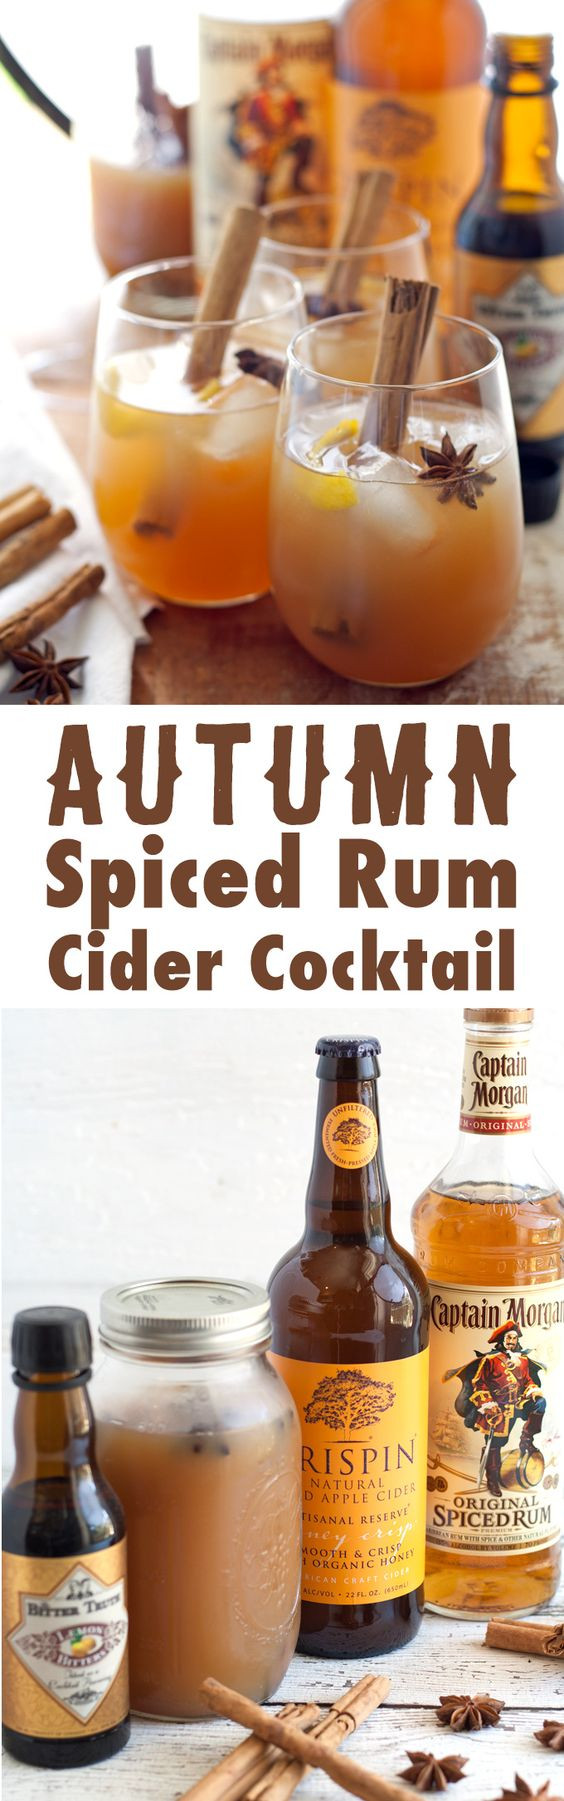 Rum Drinks For Fall  31 Fall Inspired Drink Recipes